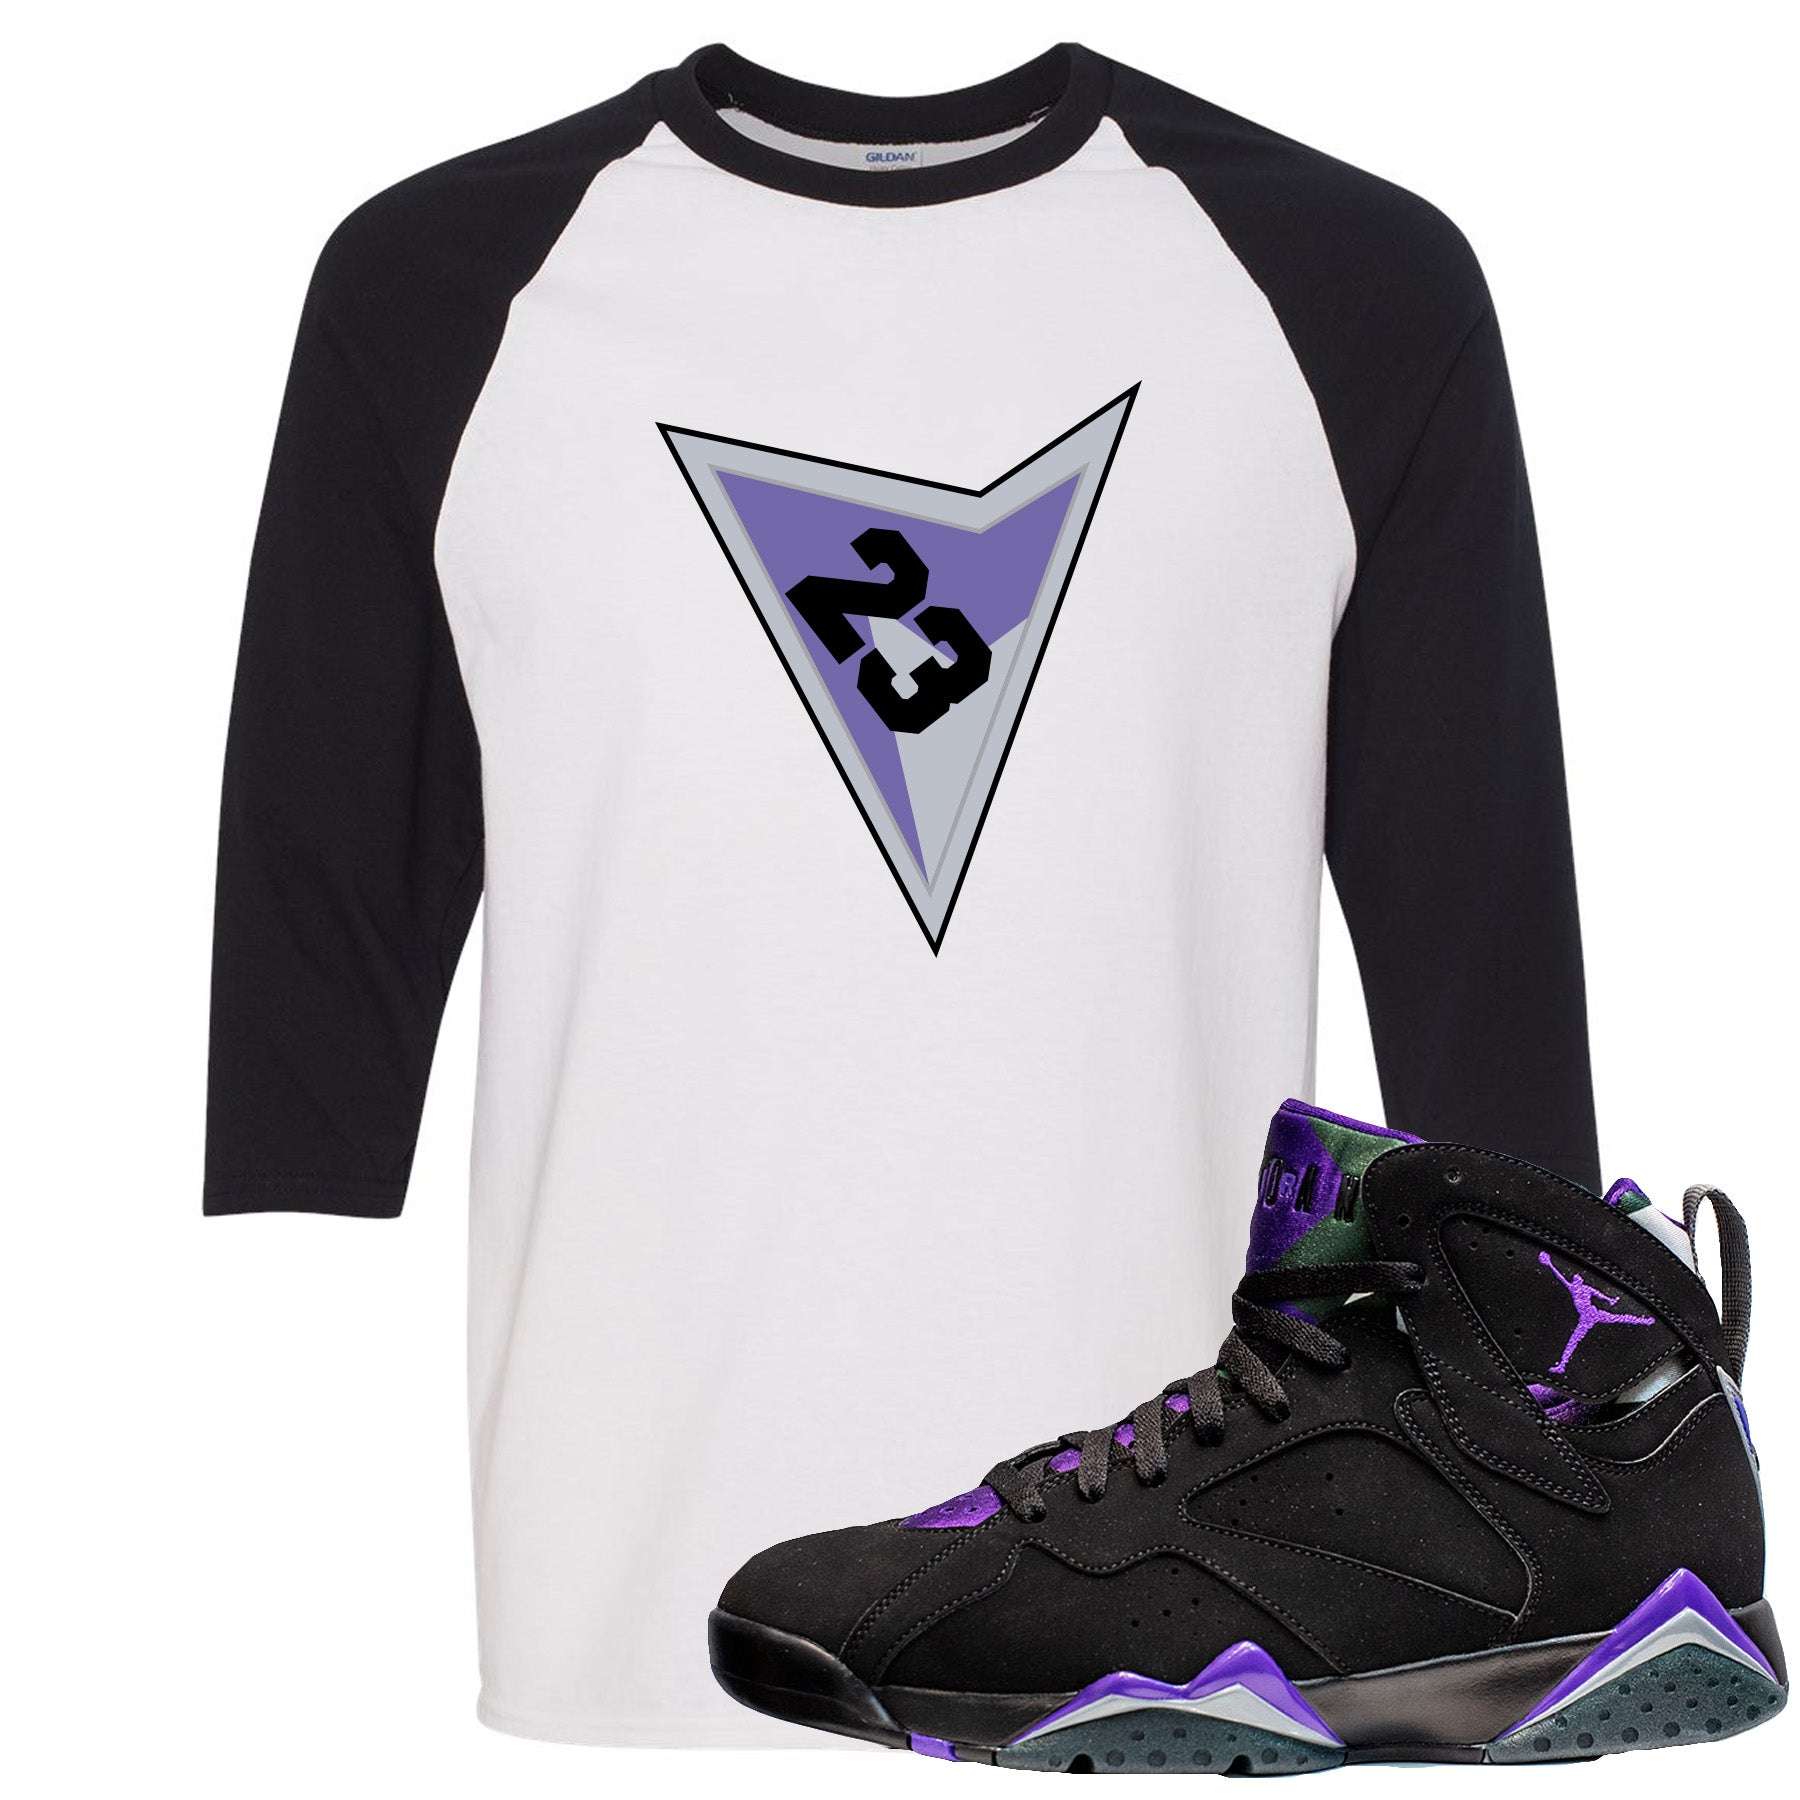 uk availability 9a06d 4f483 Air Jordan 7 Ray Allen Sneaker Match Triangle Design with 23 White and  Black Raglan T-Shirt